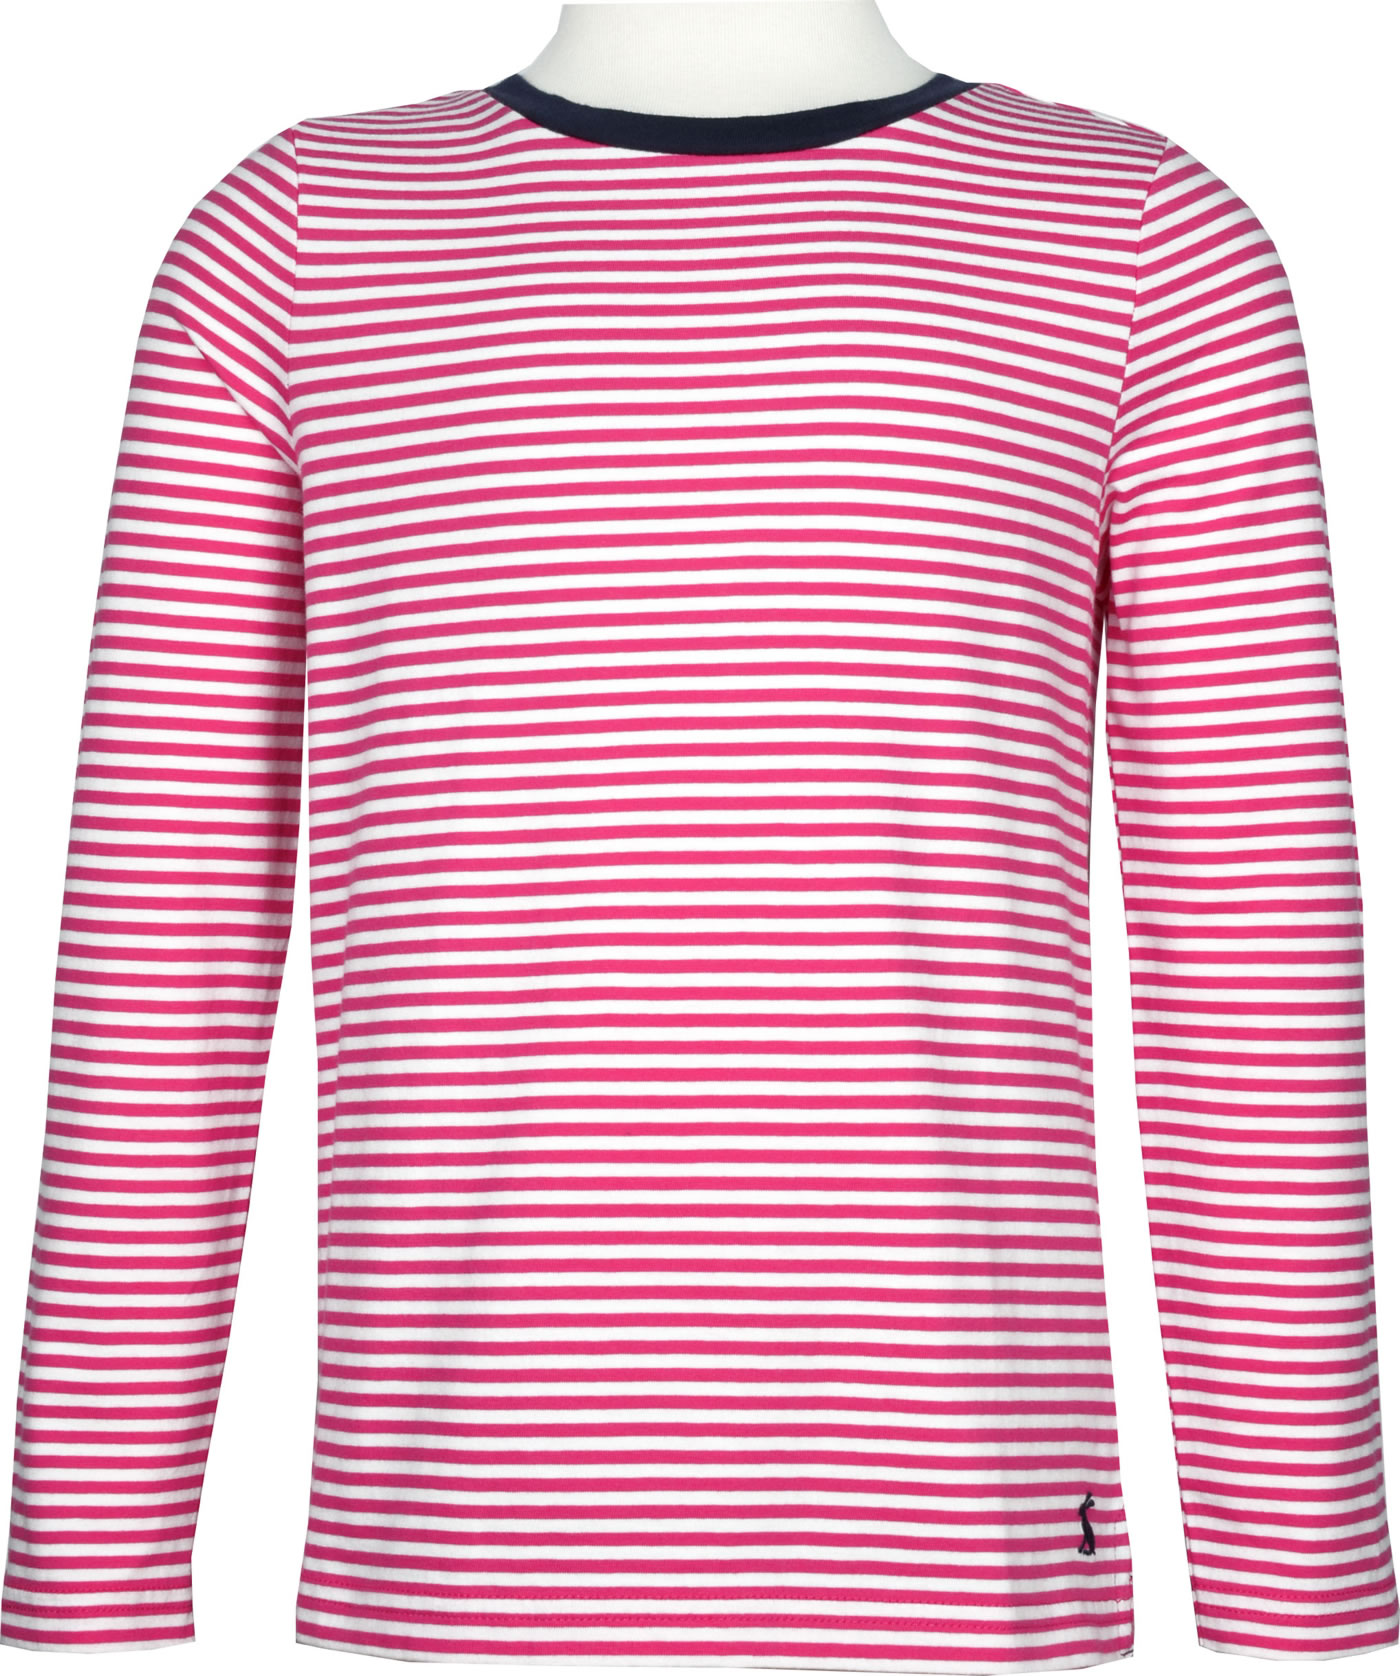 Tom Joule Jersey Applique T Shirt long sleeve PASCAL pink white stripe 209776 PNKWH